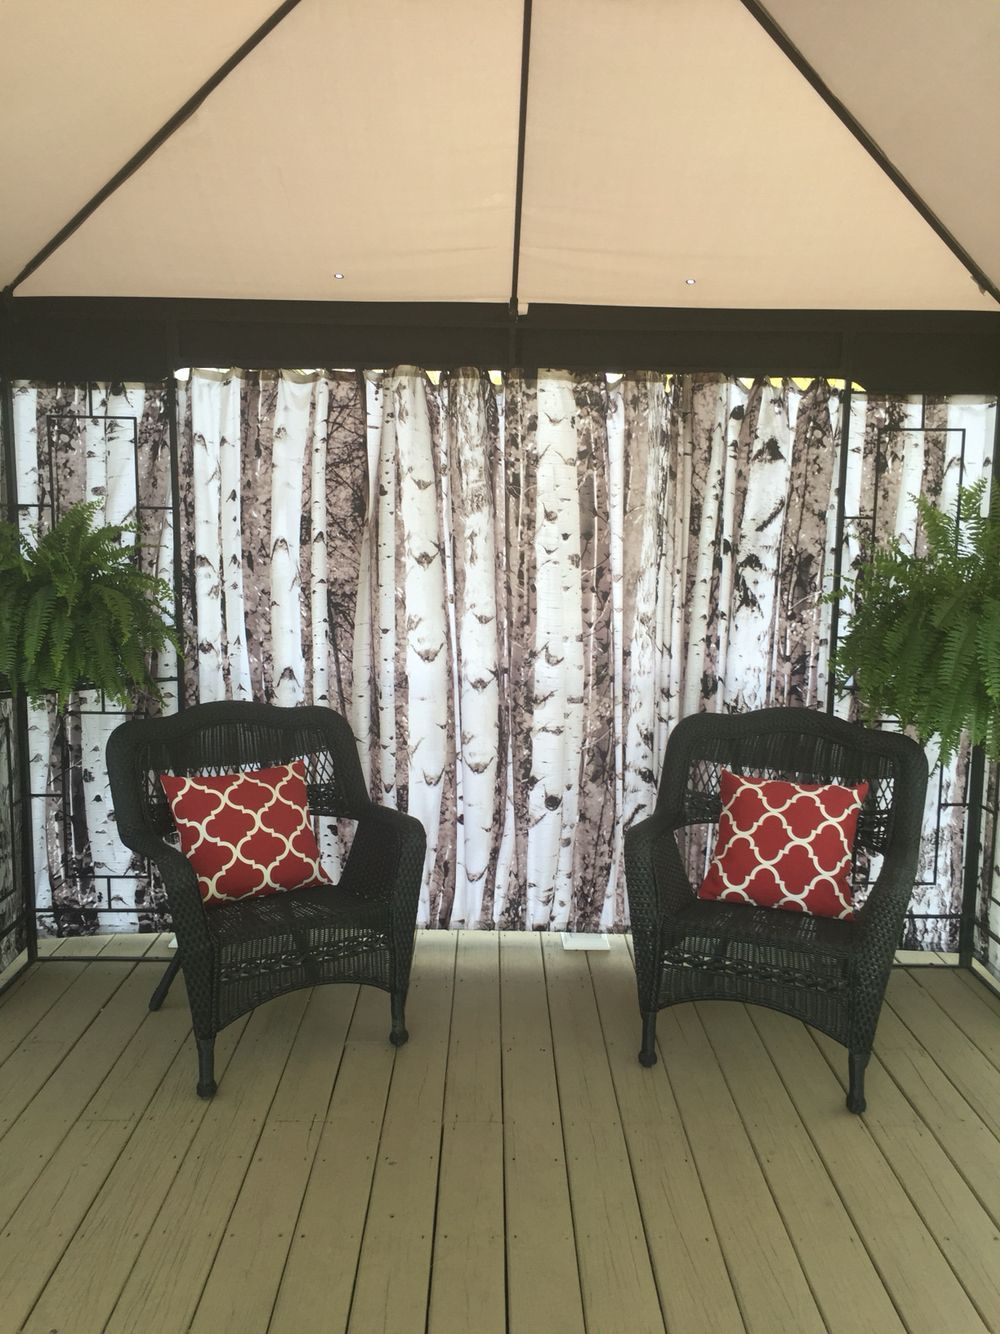 Shower Curtains As Gazebo Privacy Screen Great Idea With Images